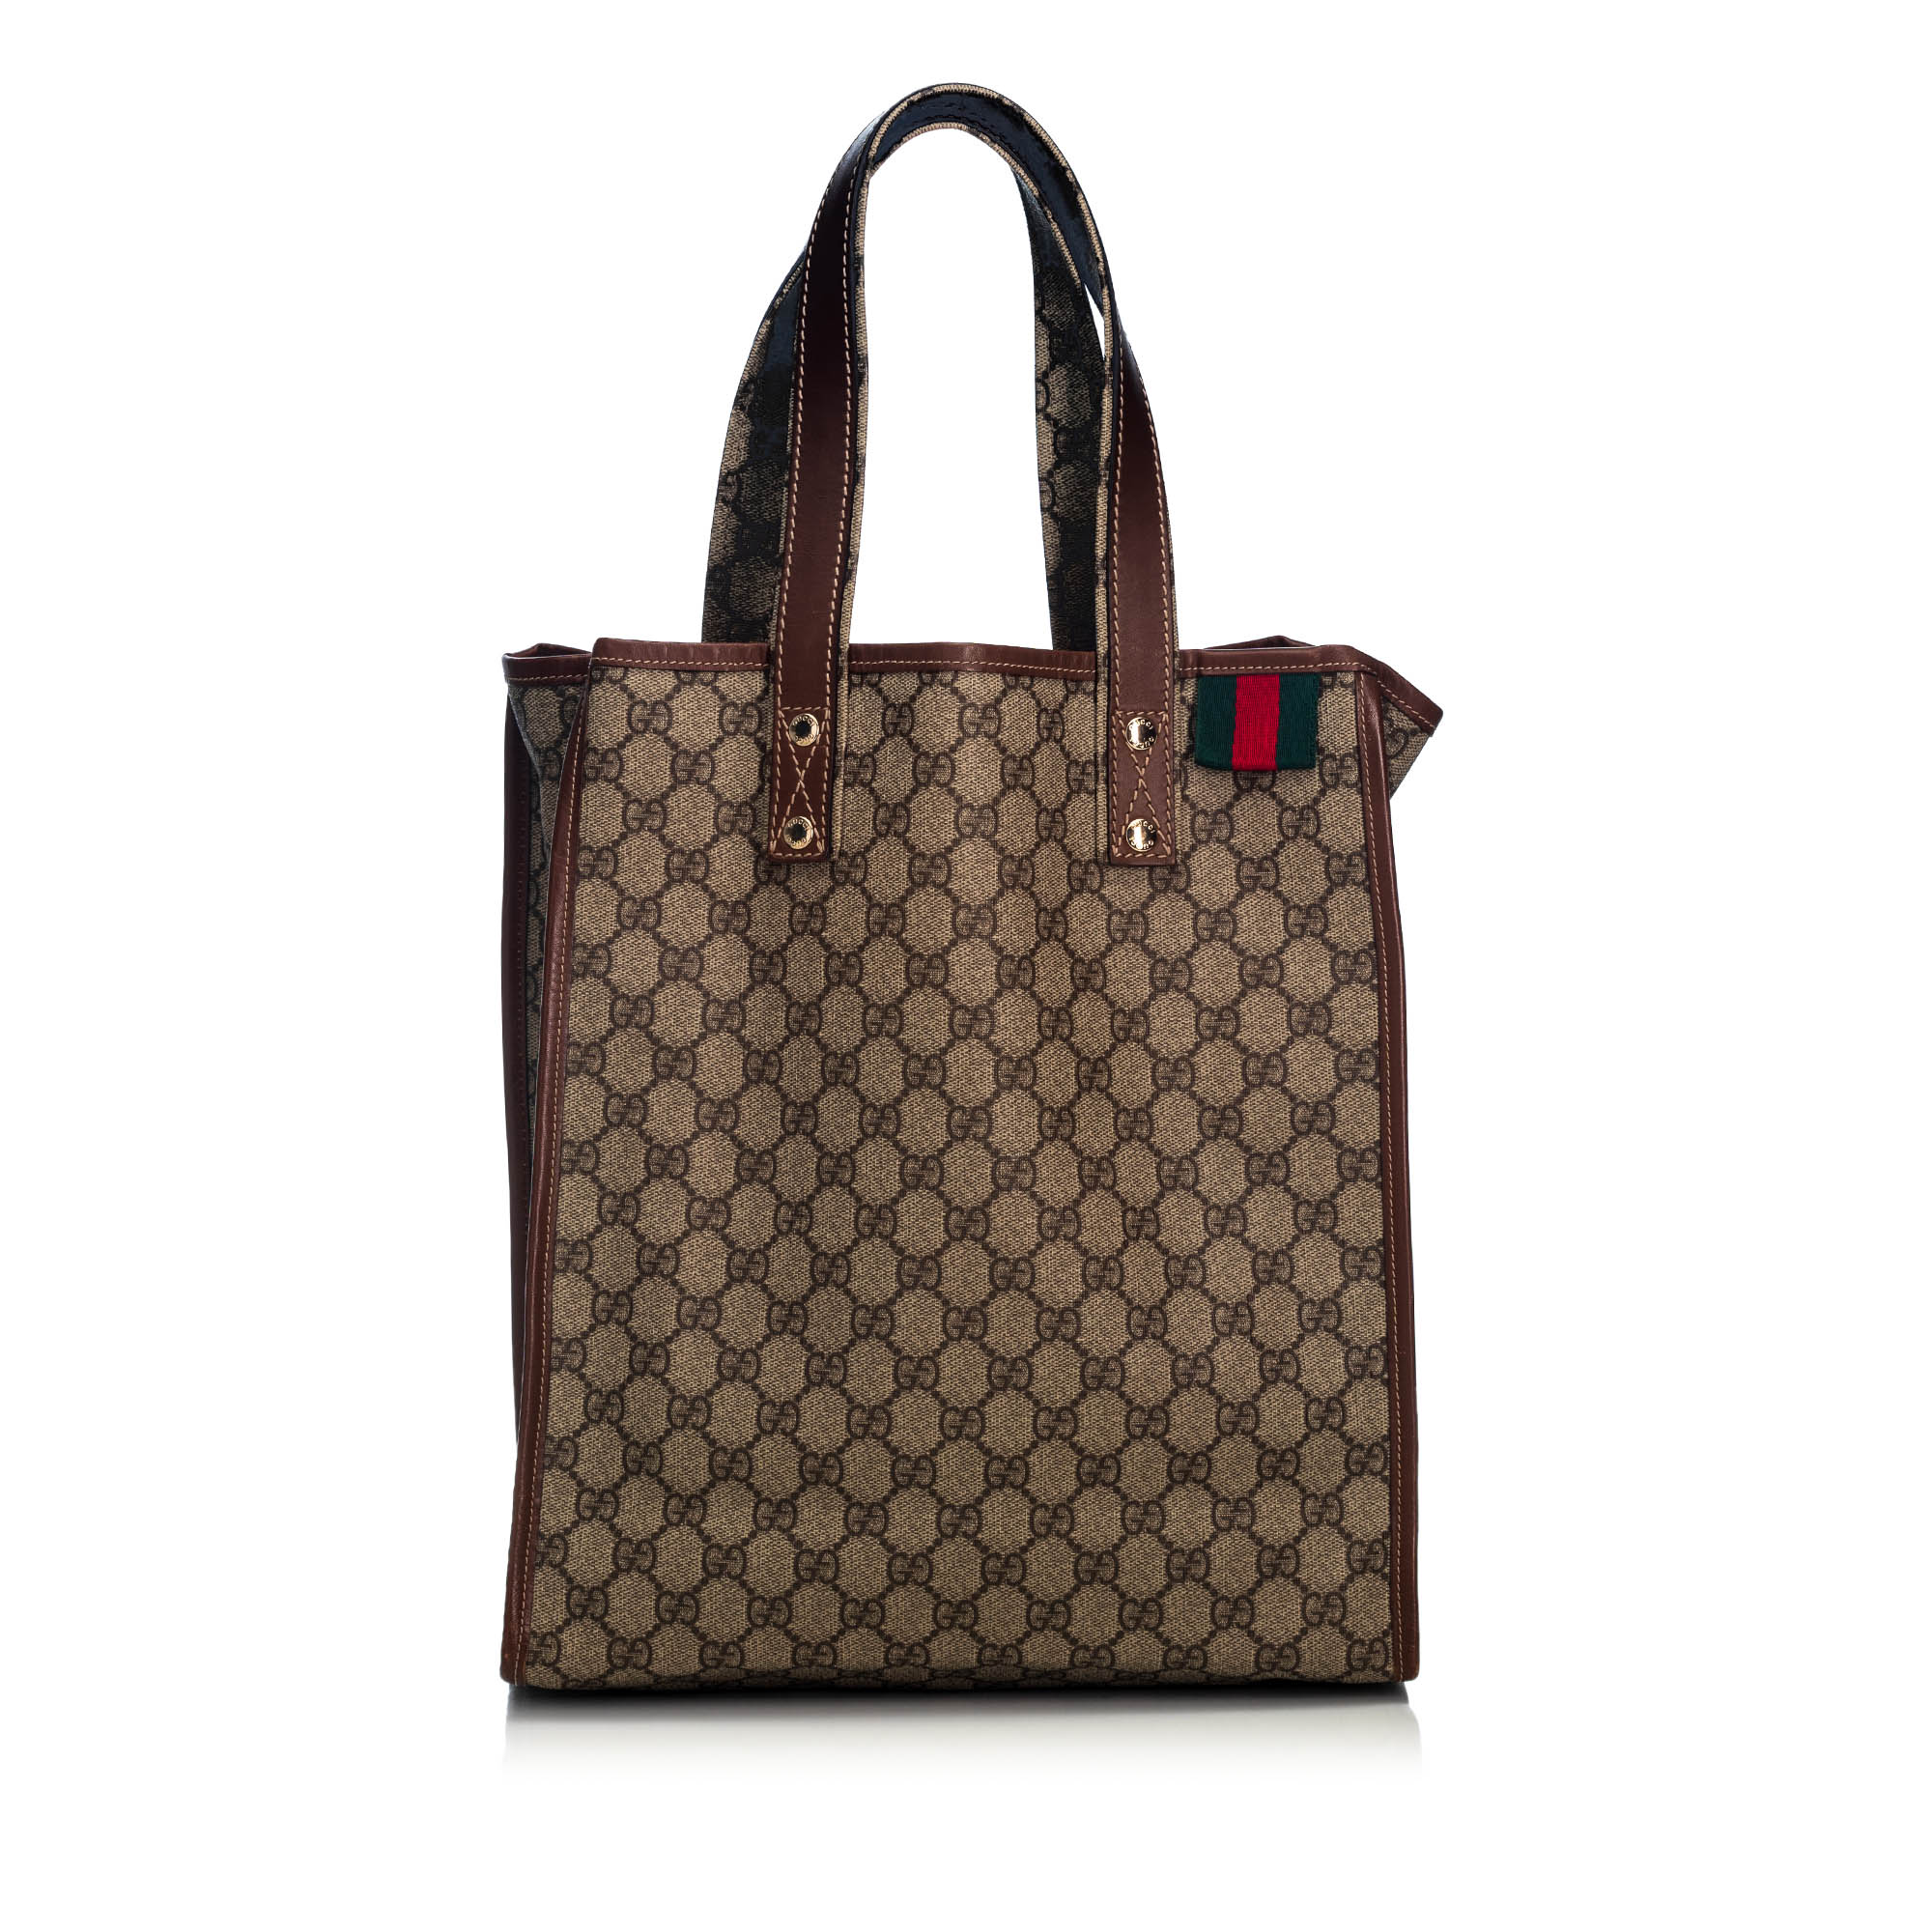 8e8ee50c9d13 Pre-Loved Gucci Brown Beige Coated Canvas Fabric GG Supreme Web Tote ...